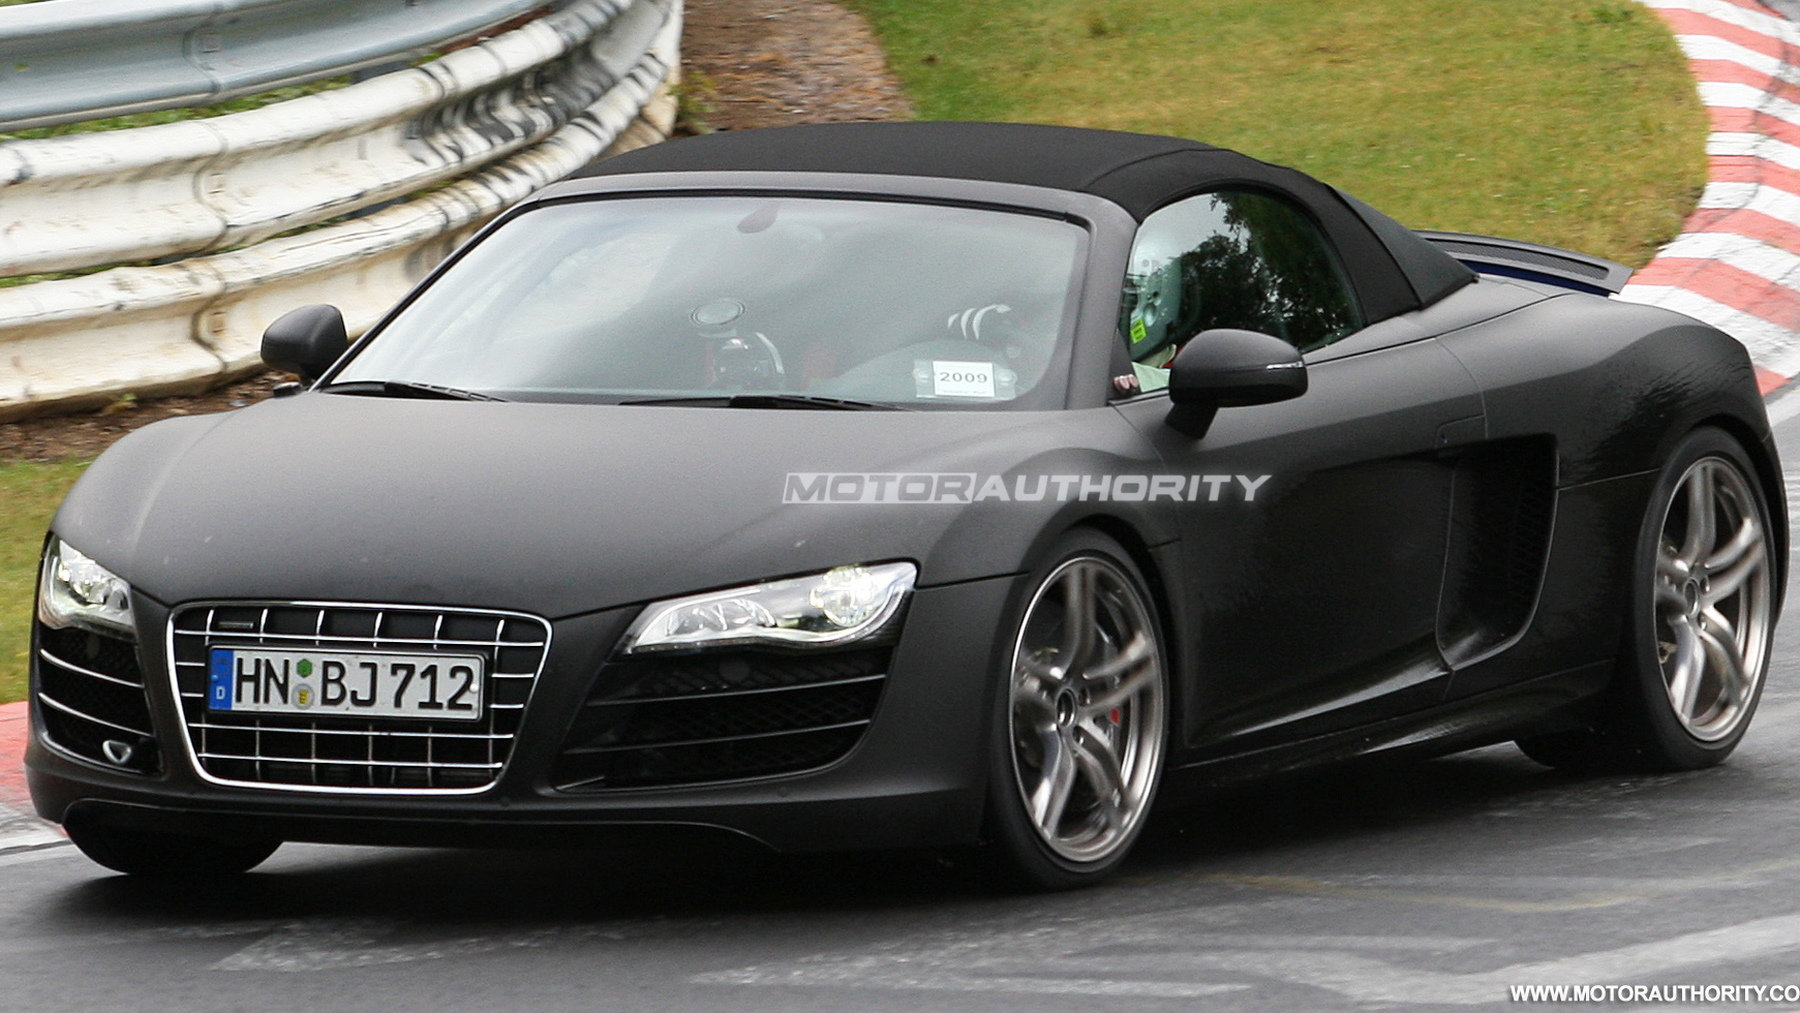 2011 audi r8 spyder spy shots june 007